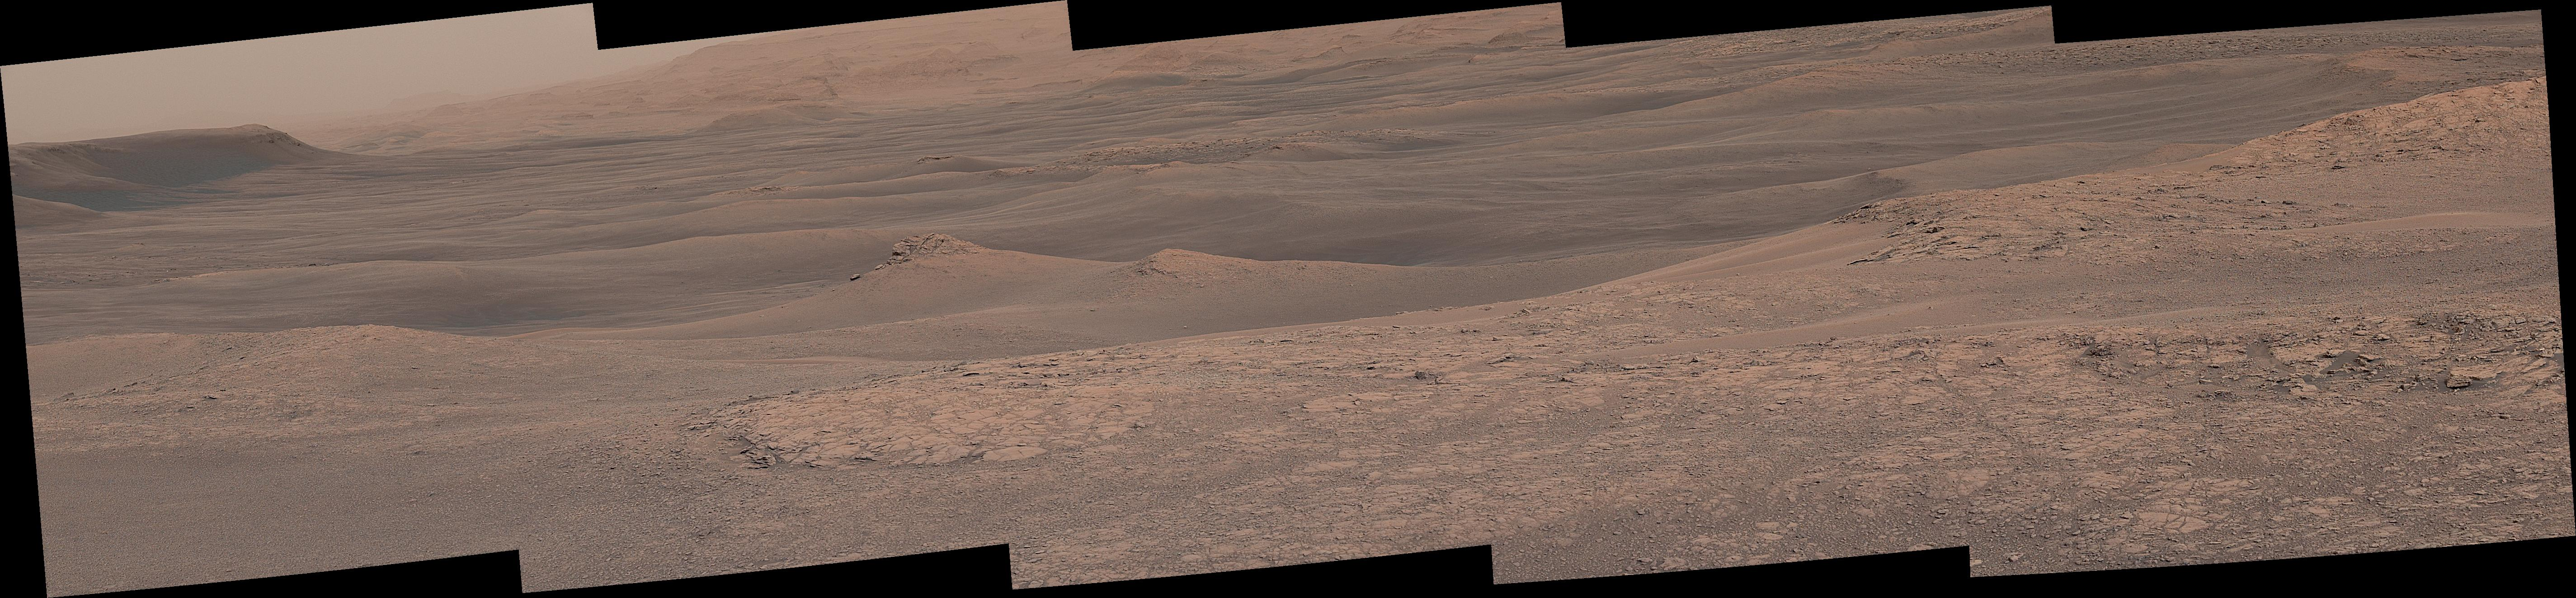 The hills and troughs in this little valley, carved between a ridge and cliffs higher up Mount Sharp, almost look like undulating waves. The Mast Camera (Mastcam) on NASA's Curiosity Mars rover captured this mosaic as it explored the clay-bearing unit on Jan. 23, 2019 (Sol 2299). Credit: NASA/JPL-Caltech/MSSS